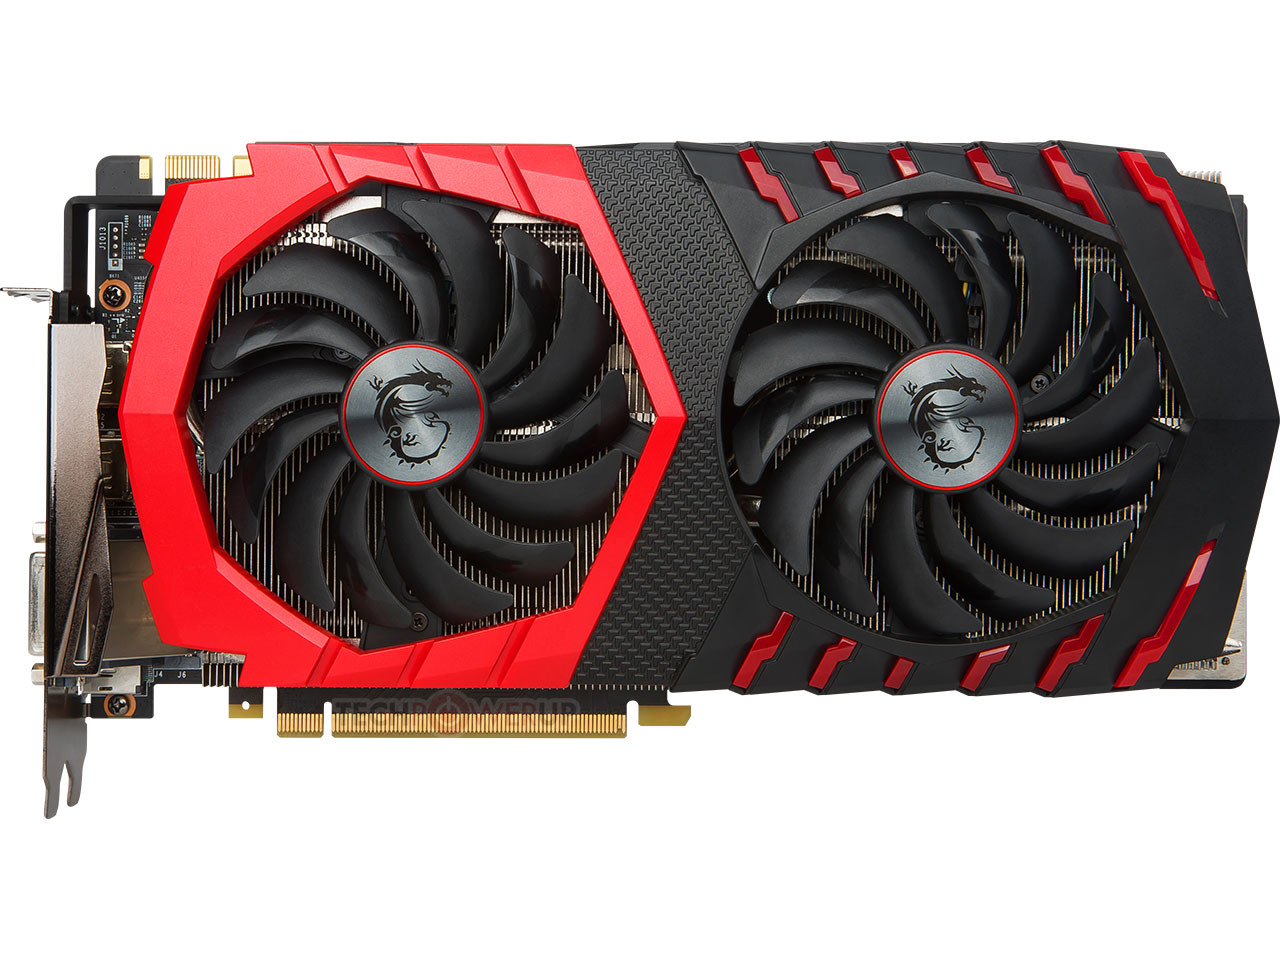 MSI Lifts the Lid on Their GeForce GTX 1080 Ti GAMING X Graphics